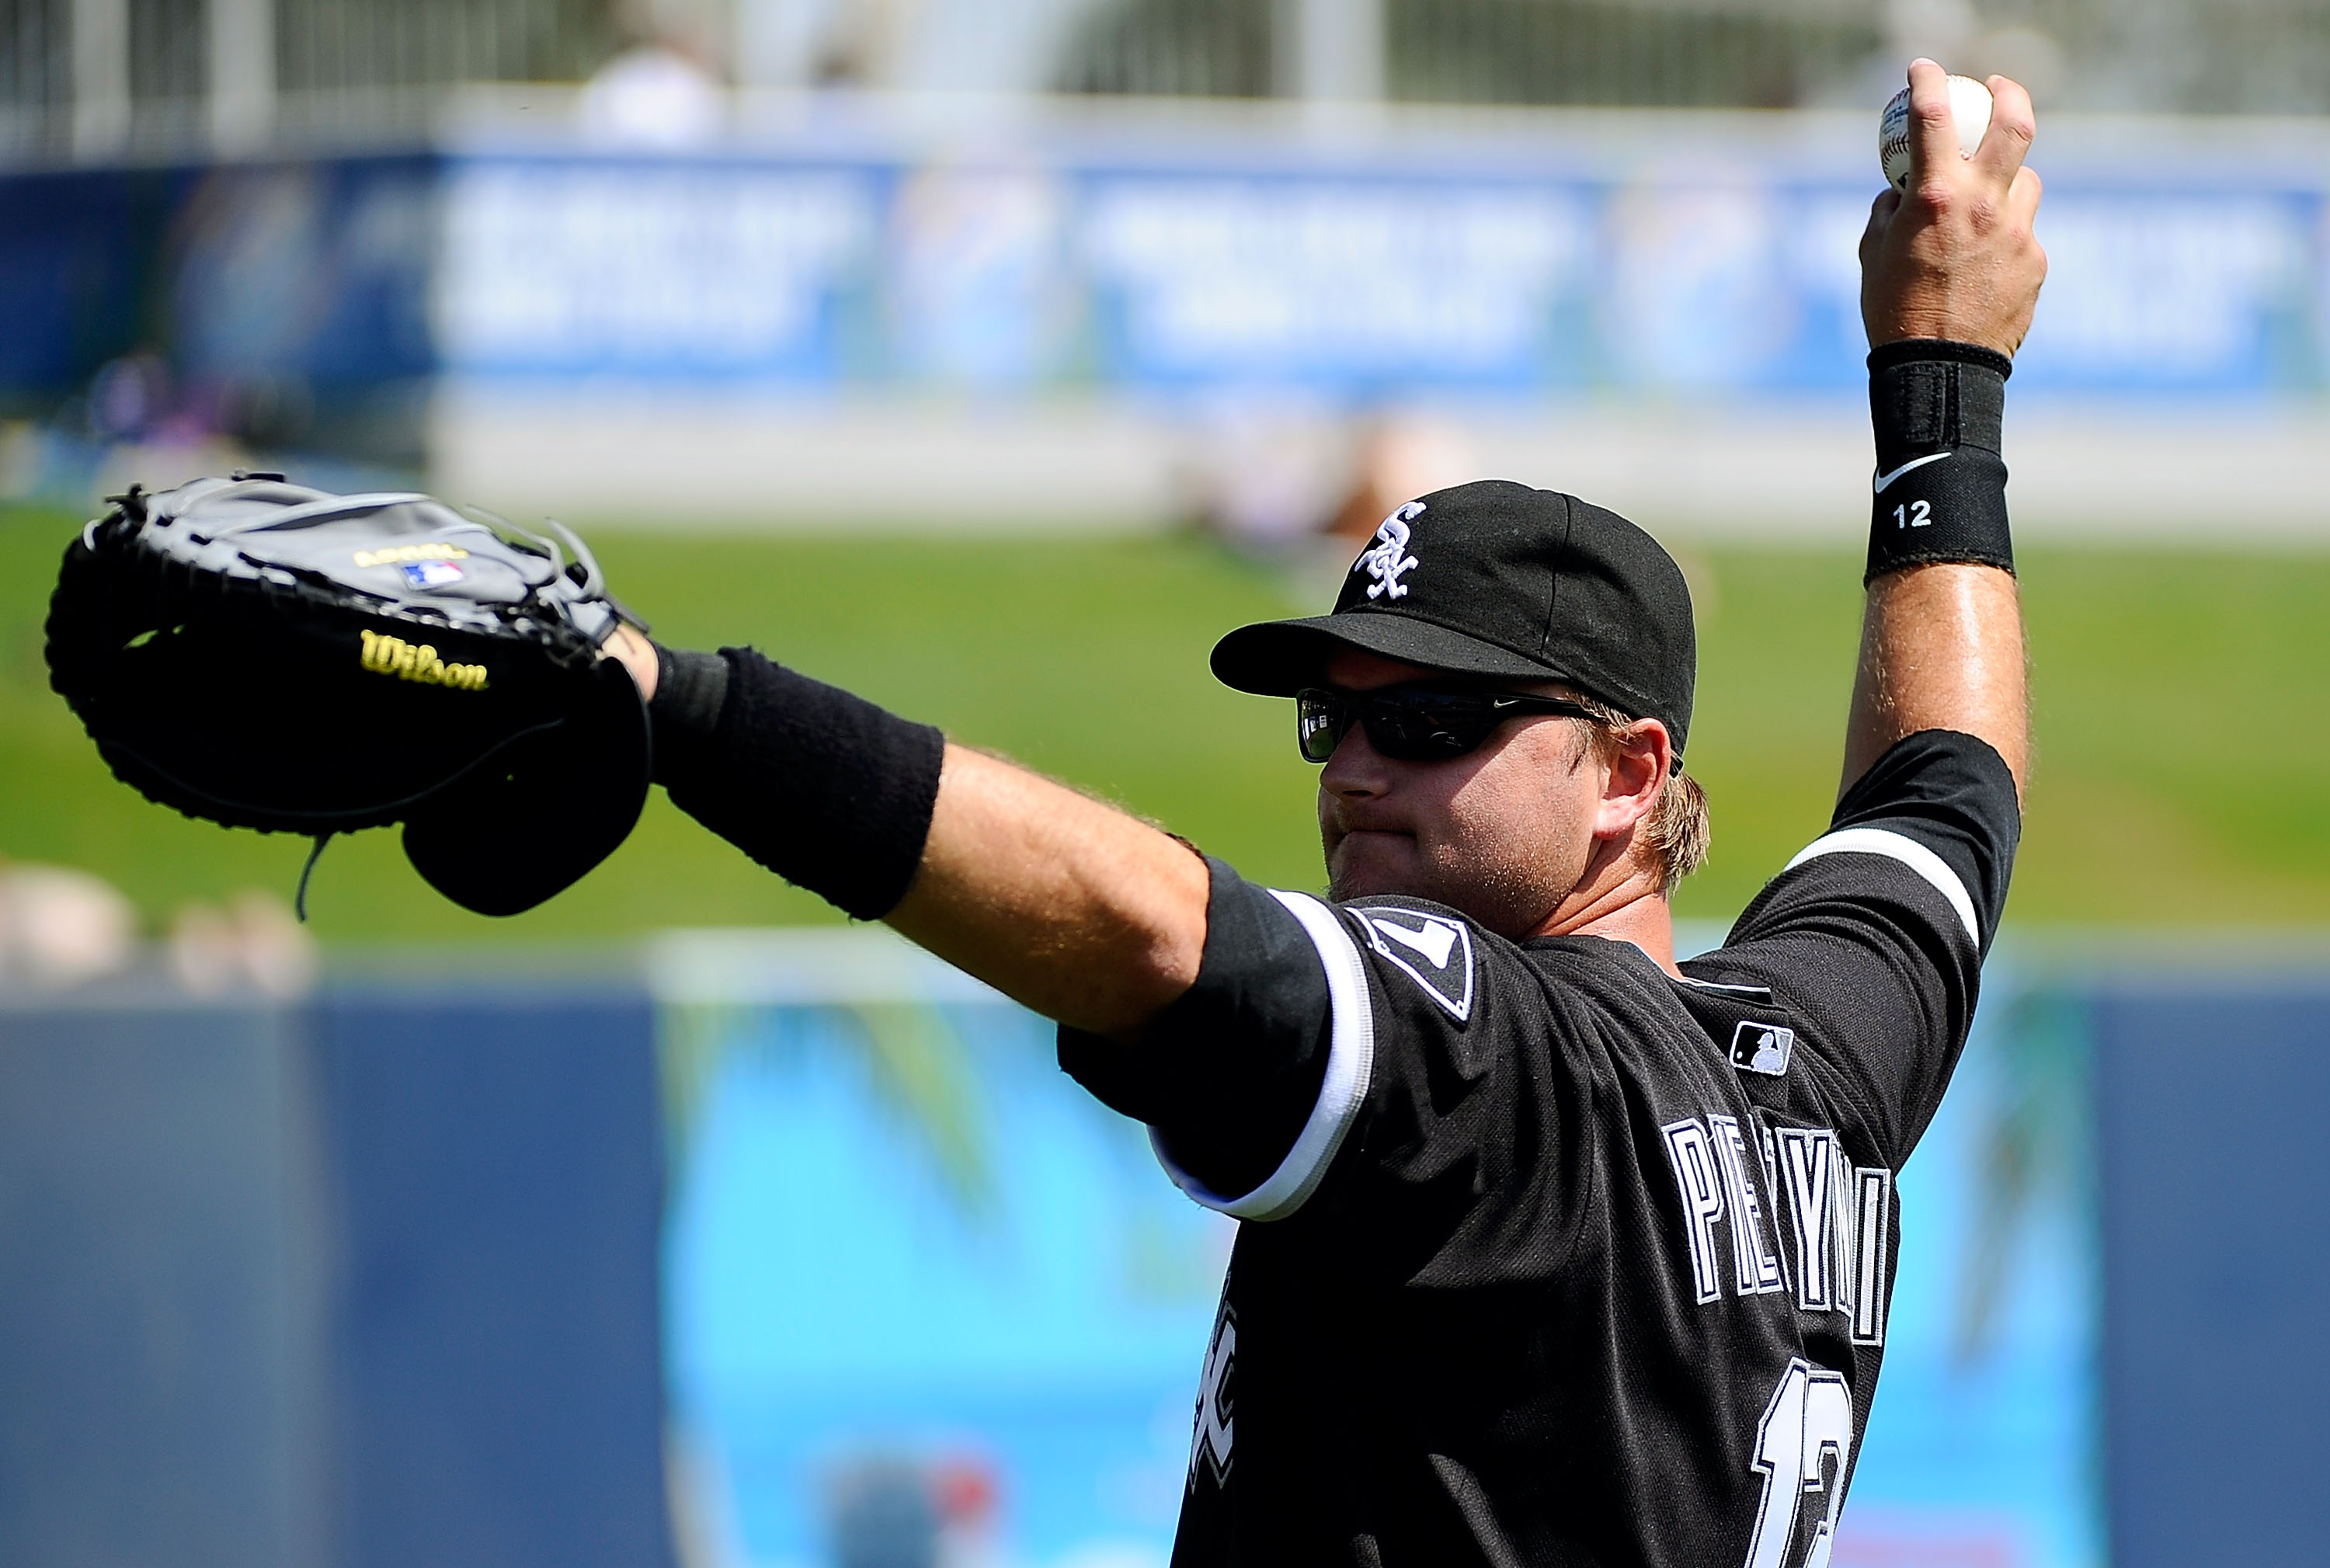 PHOENIX, AZ - MARCH 17:  A.J. Pierzynski #12 of the Chicago White Sox warms up on the field before playing against the Milwaukee Brewers during the spring training game at Maryvale Baseball Park on March 17, 2011 in Phoenix, Arizona.  (Photo by Kevork Dja